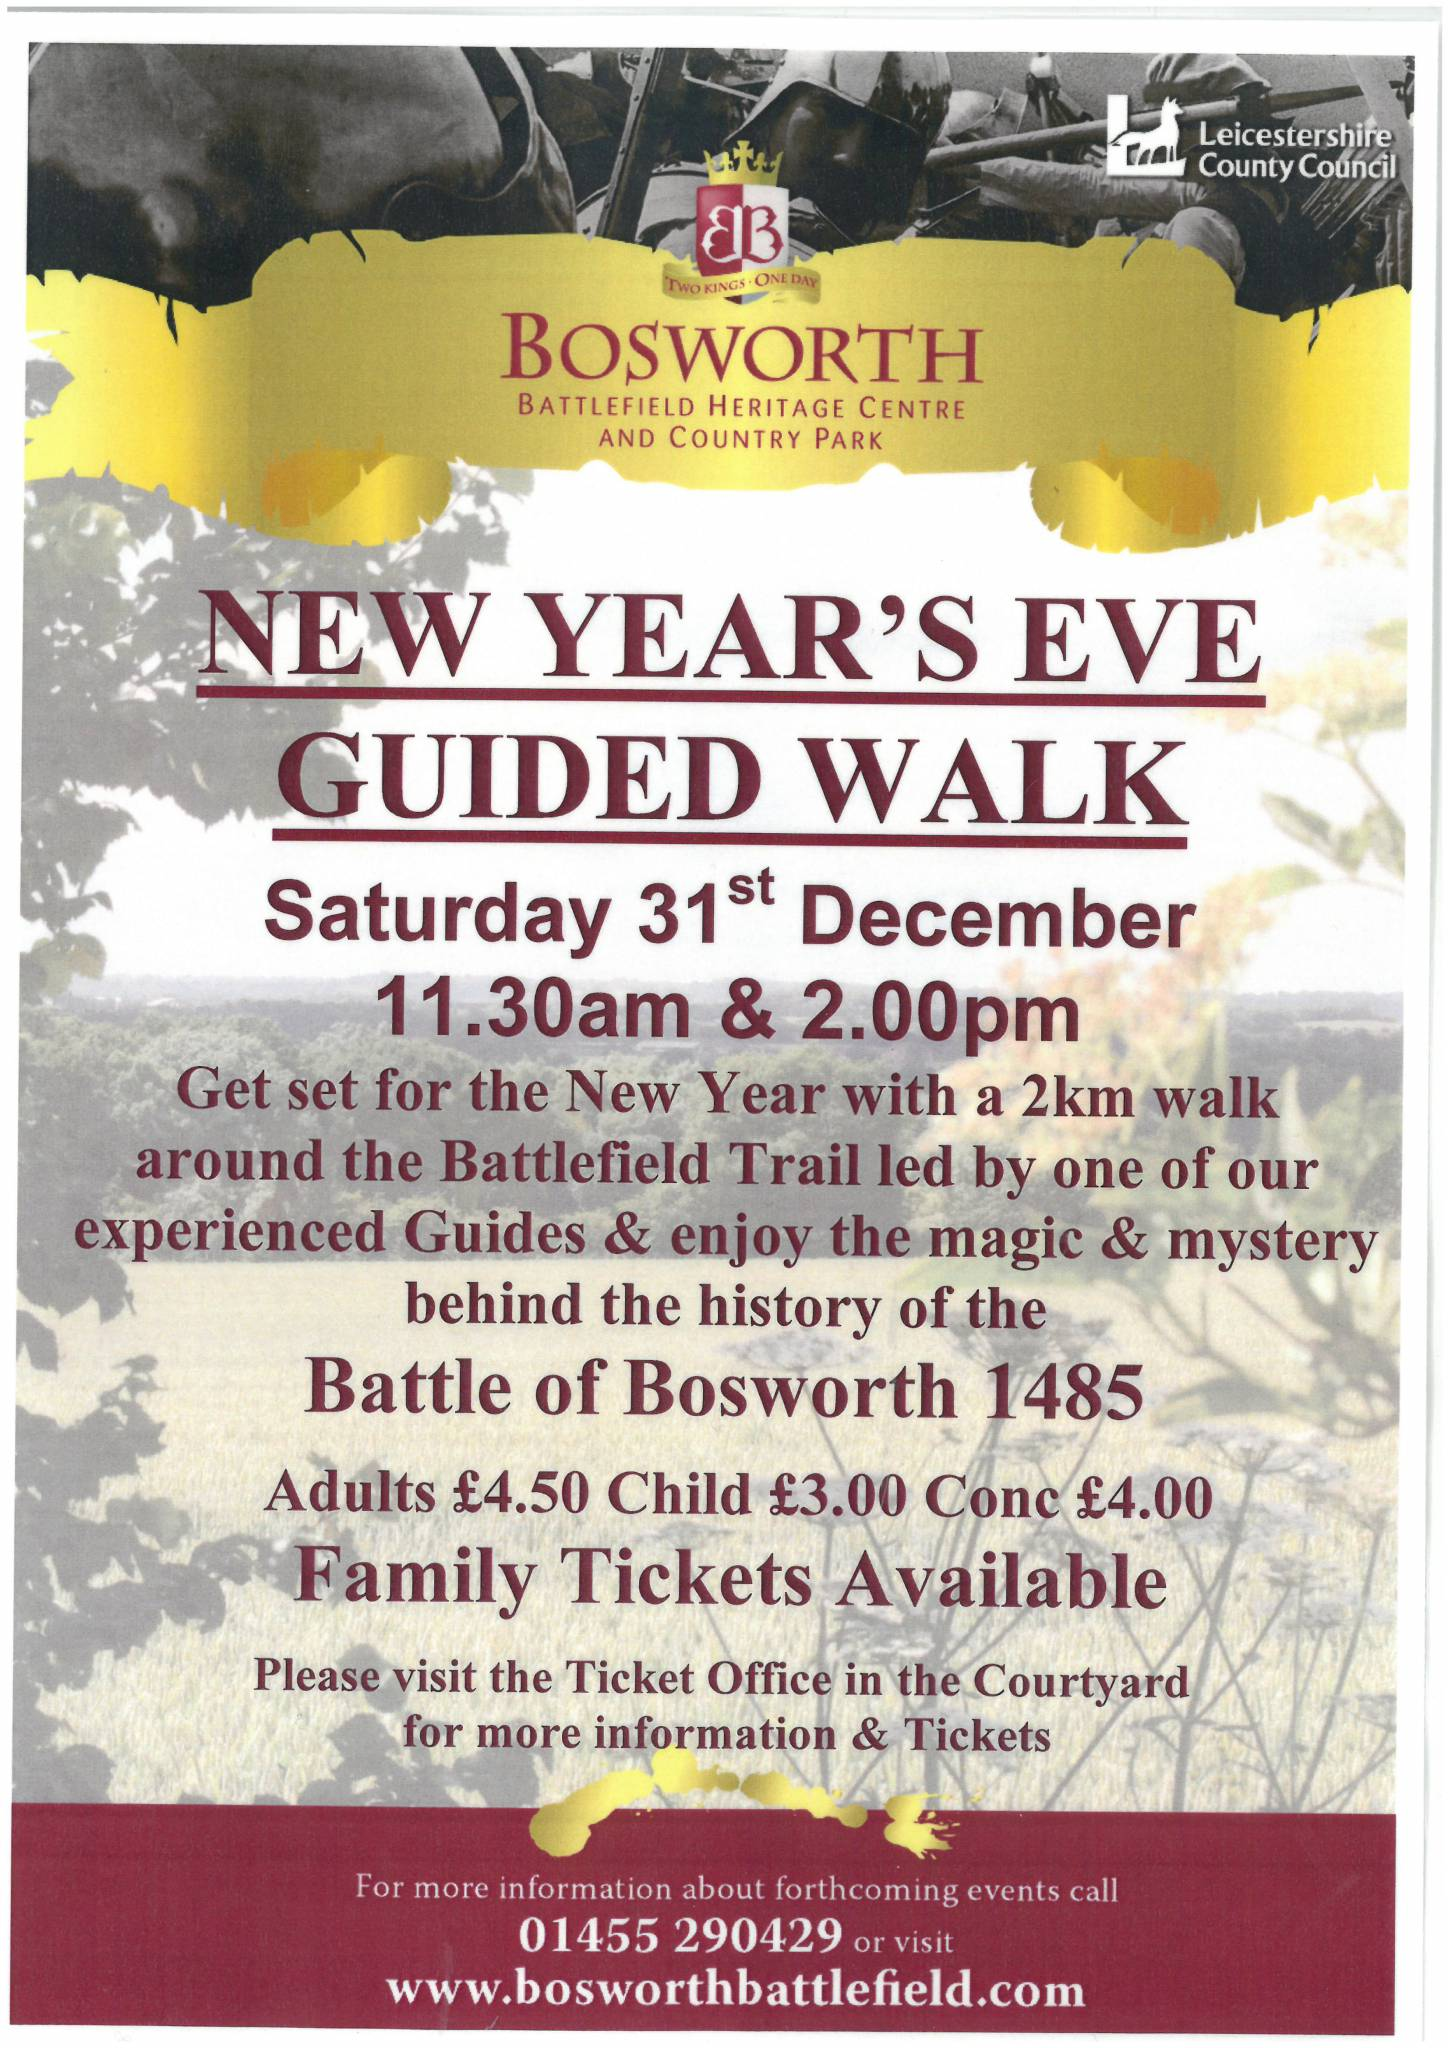 New Year's Eve Guided Walk